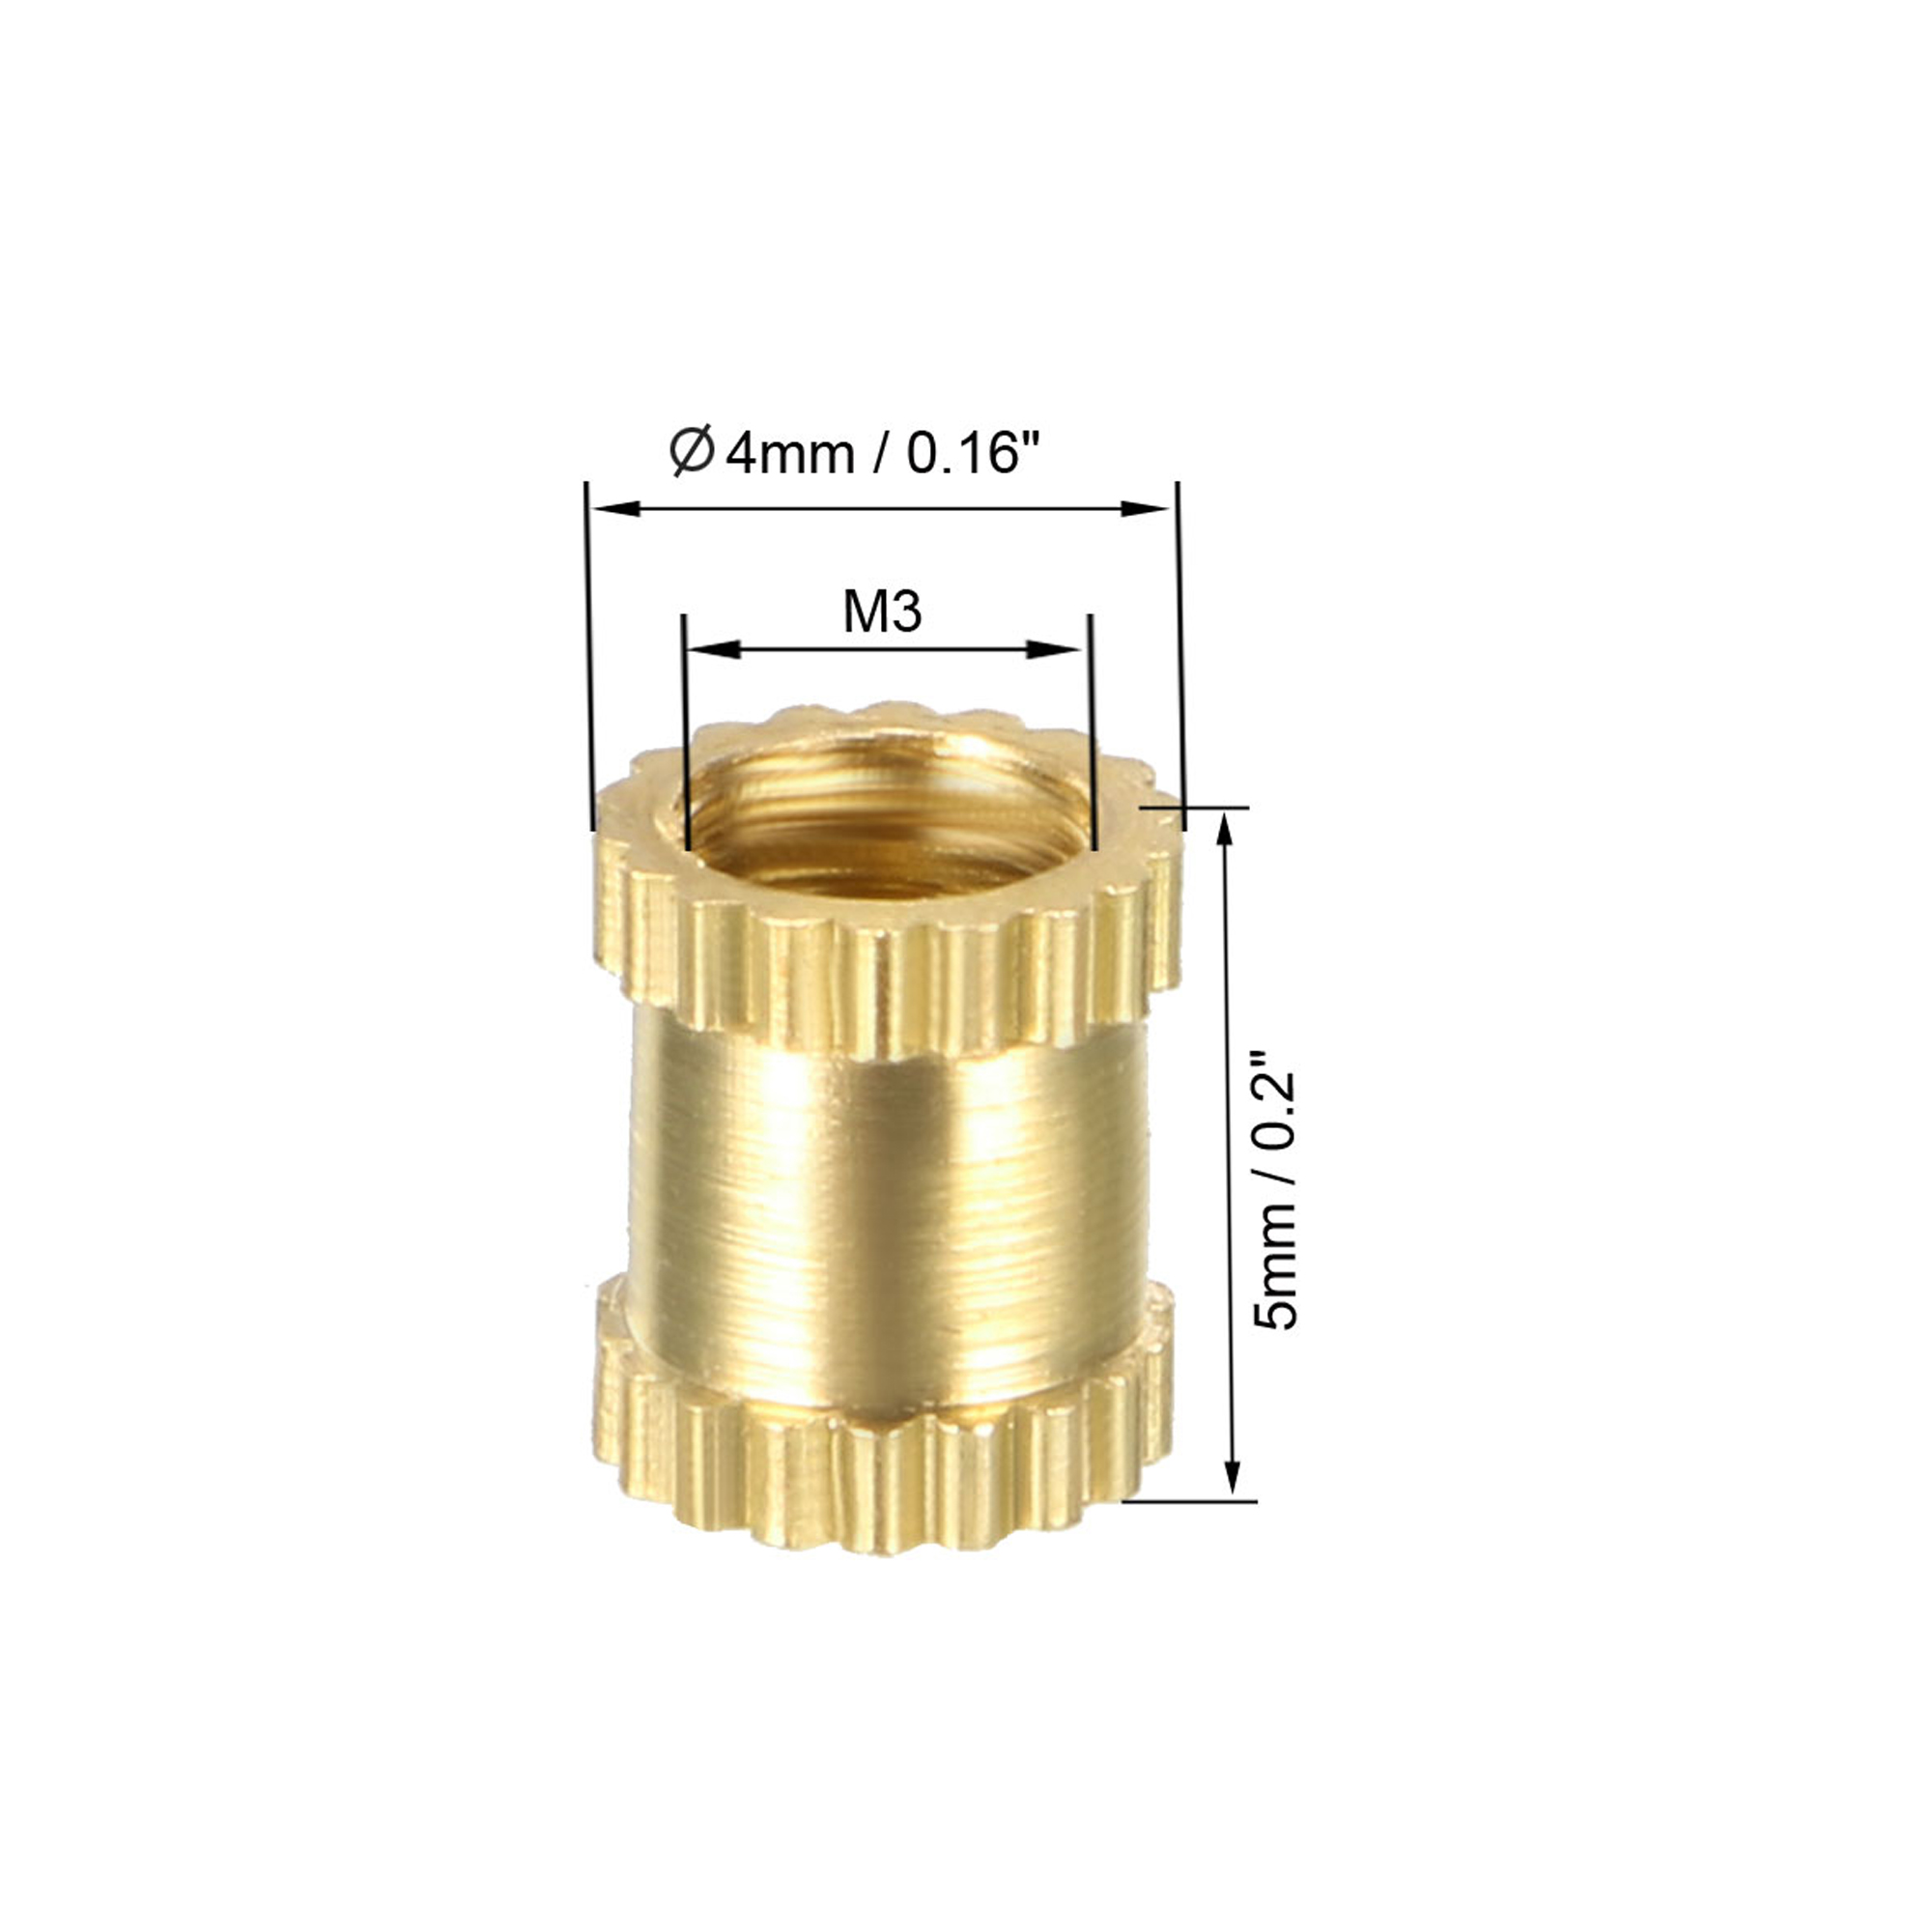 knurled Threaded Insert Pack of 10 Brass Insert Nuts with Female Thread M3 x 5 mm L x 4 mm OD